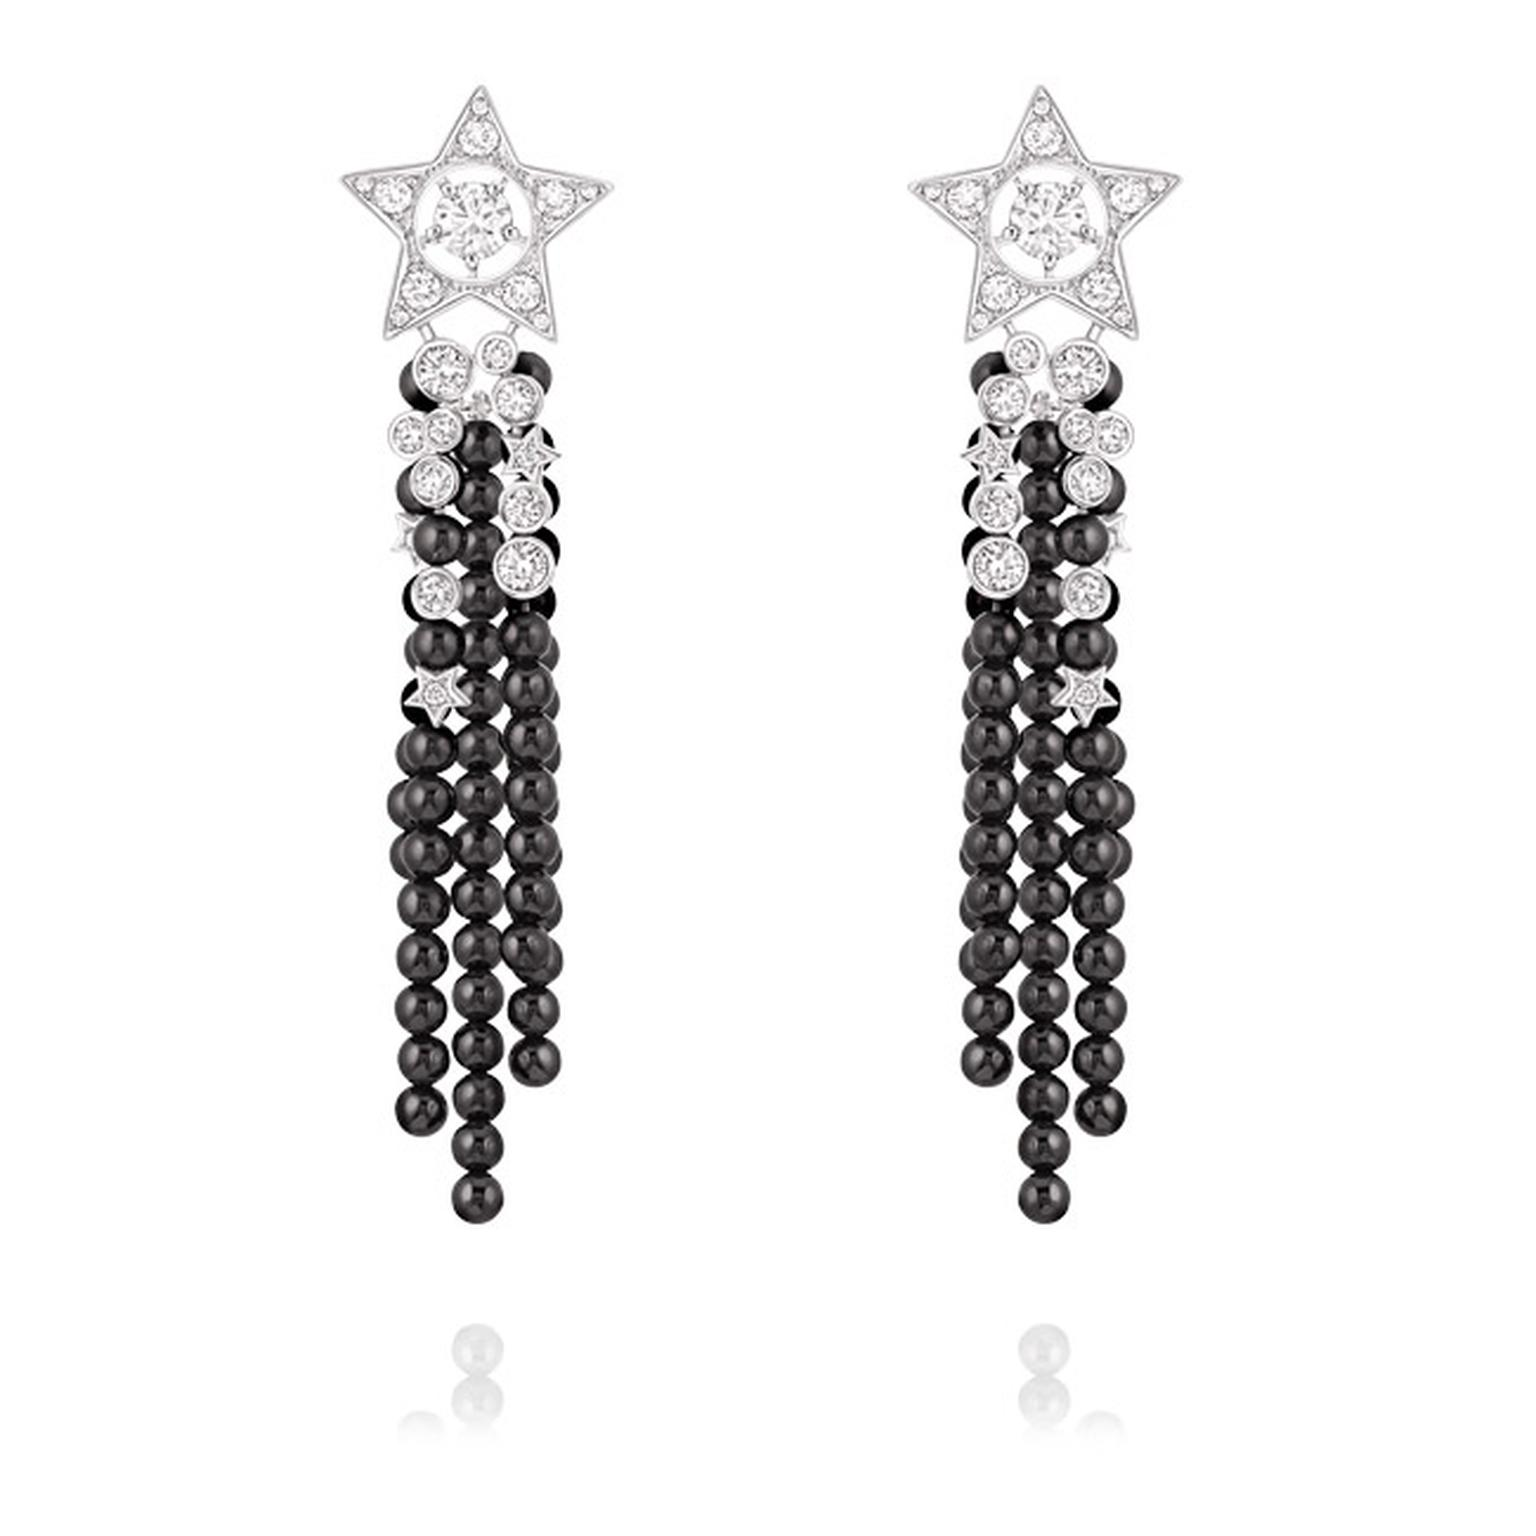 Chanel-Comete-Earrings-Main